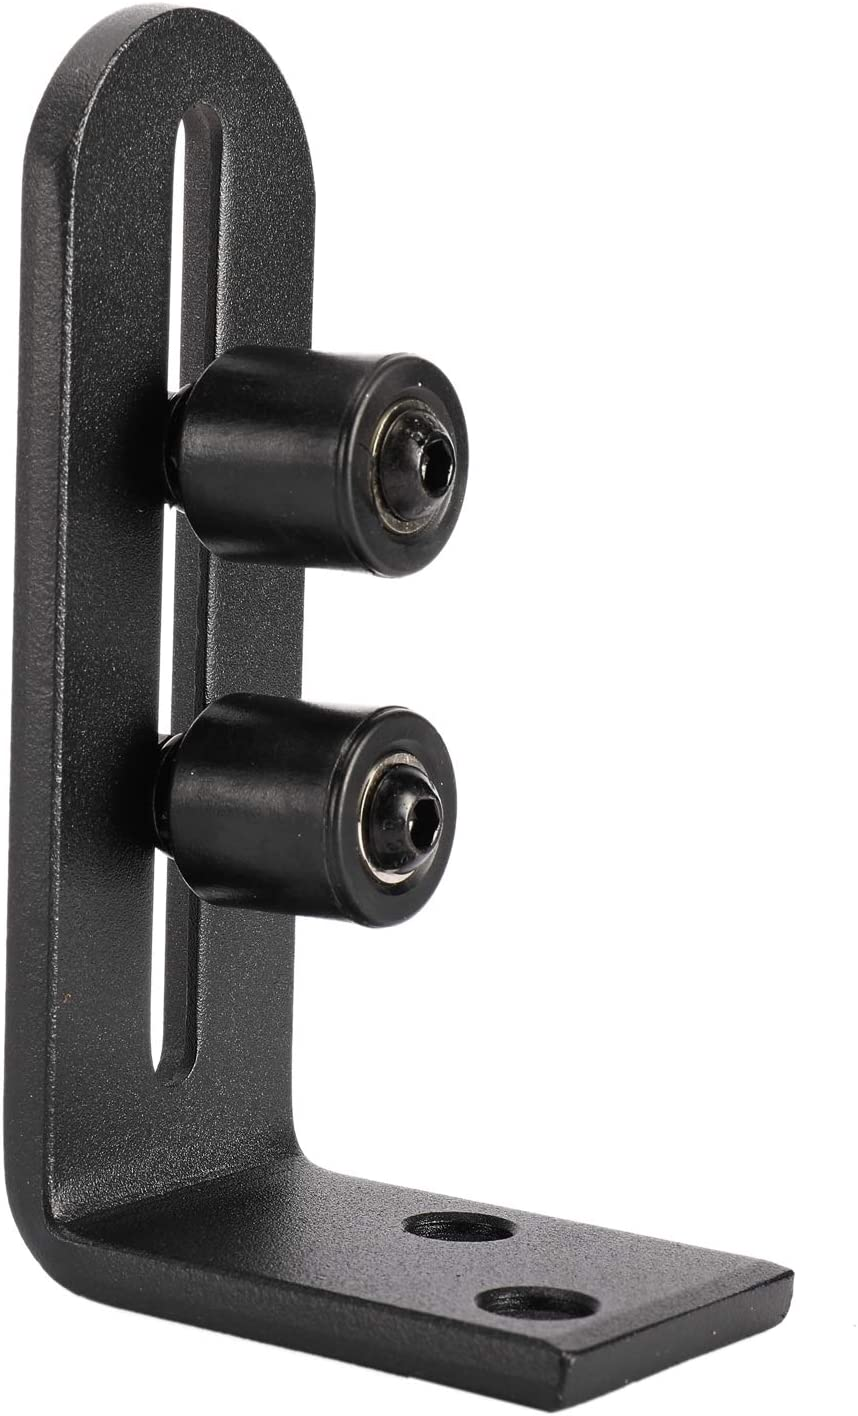 HighFree Sliding Barn Door Floor Guide Adjustable Stay Roller Floor Guide with Ball Bearings for Sliding Barn Door New Upgraded 2 Pack Including Wrench and Screws